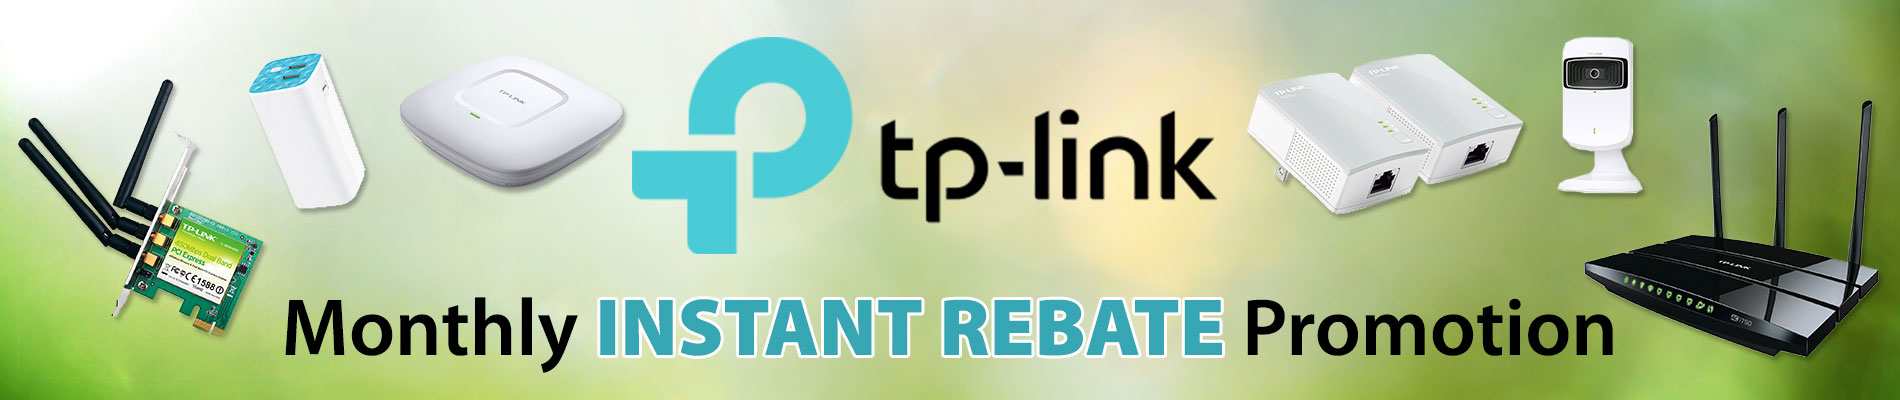 Monthly Instant Rebate Promotion